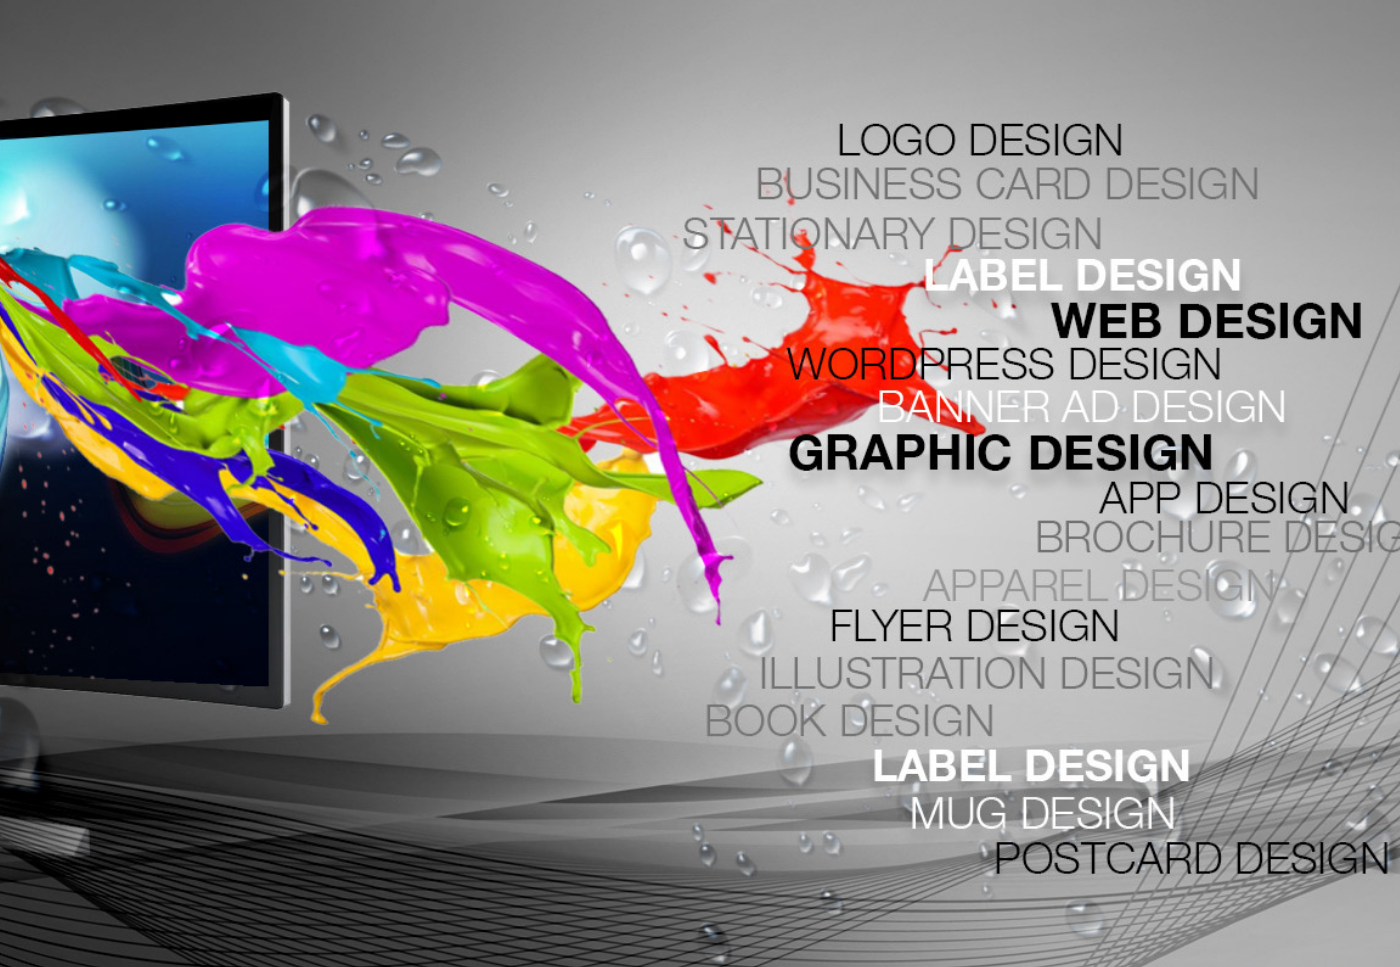 Graphic Design Services For Small Business